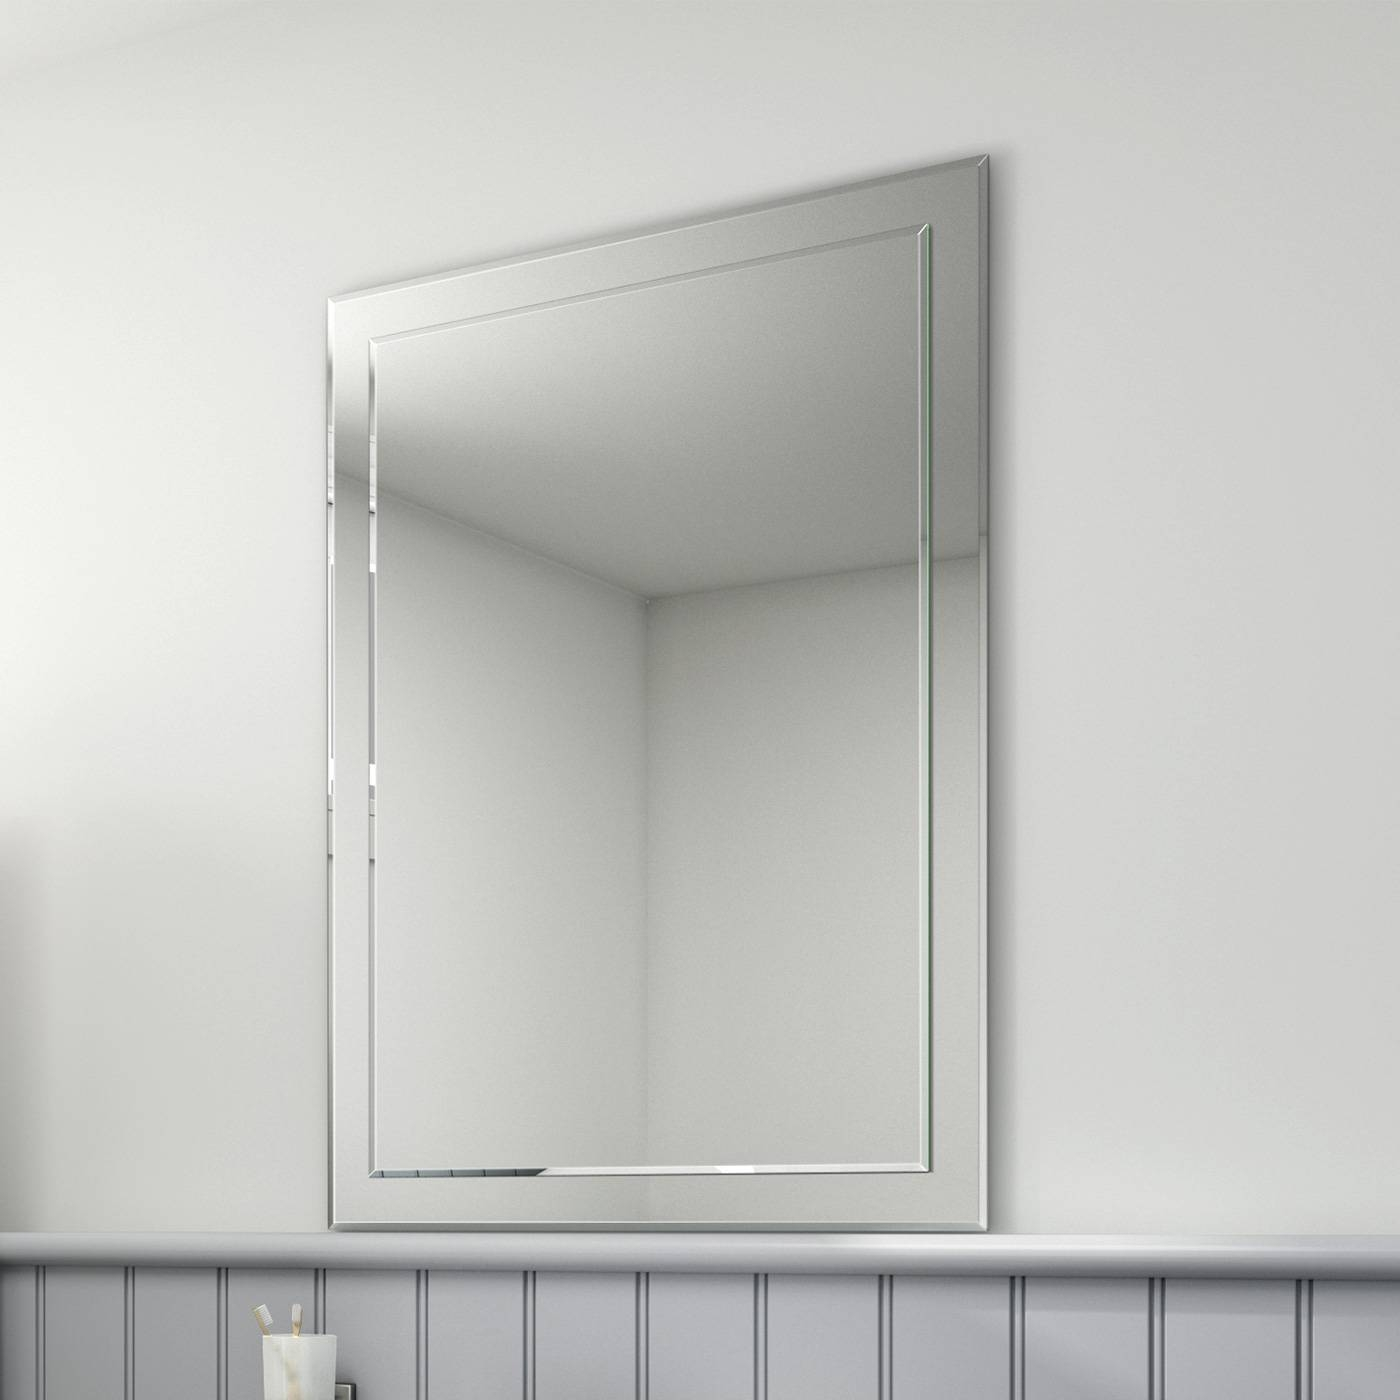 650X900Mm Bevelled Glass Edge Rectangular Bathroom Mirror Mc147 | Ebay Inside Square Bevelled Mirrors (View 3 of 15)